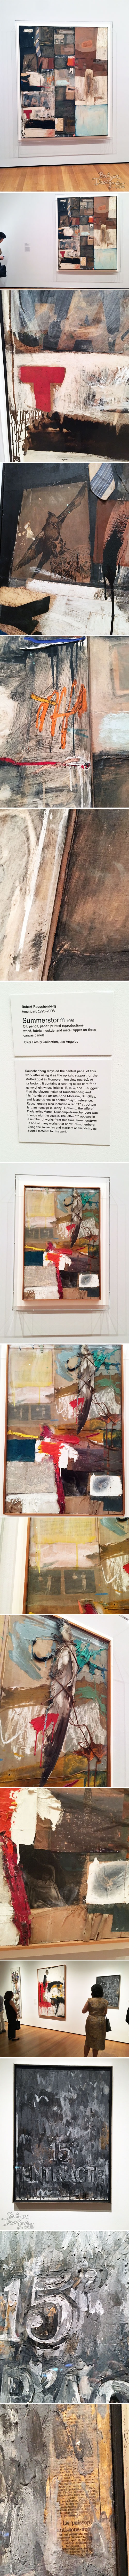 From the Balzer Designs Blog: Robert Rauschenberg: Among Friends at MoMA